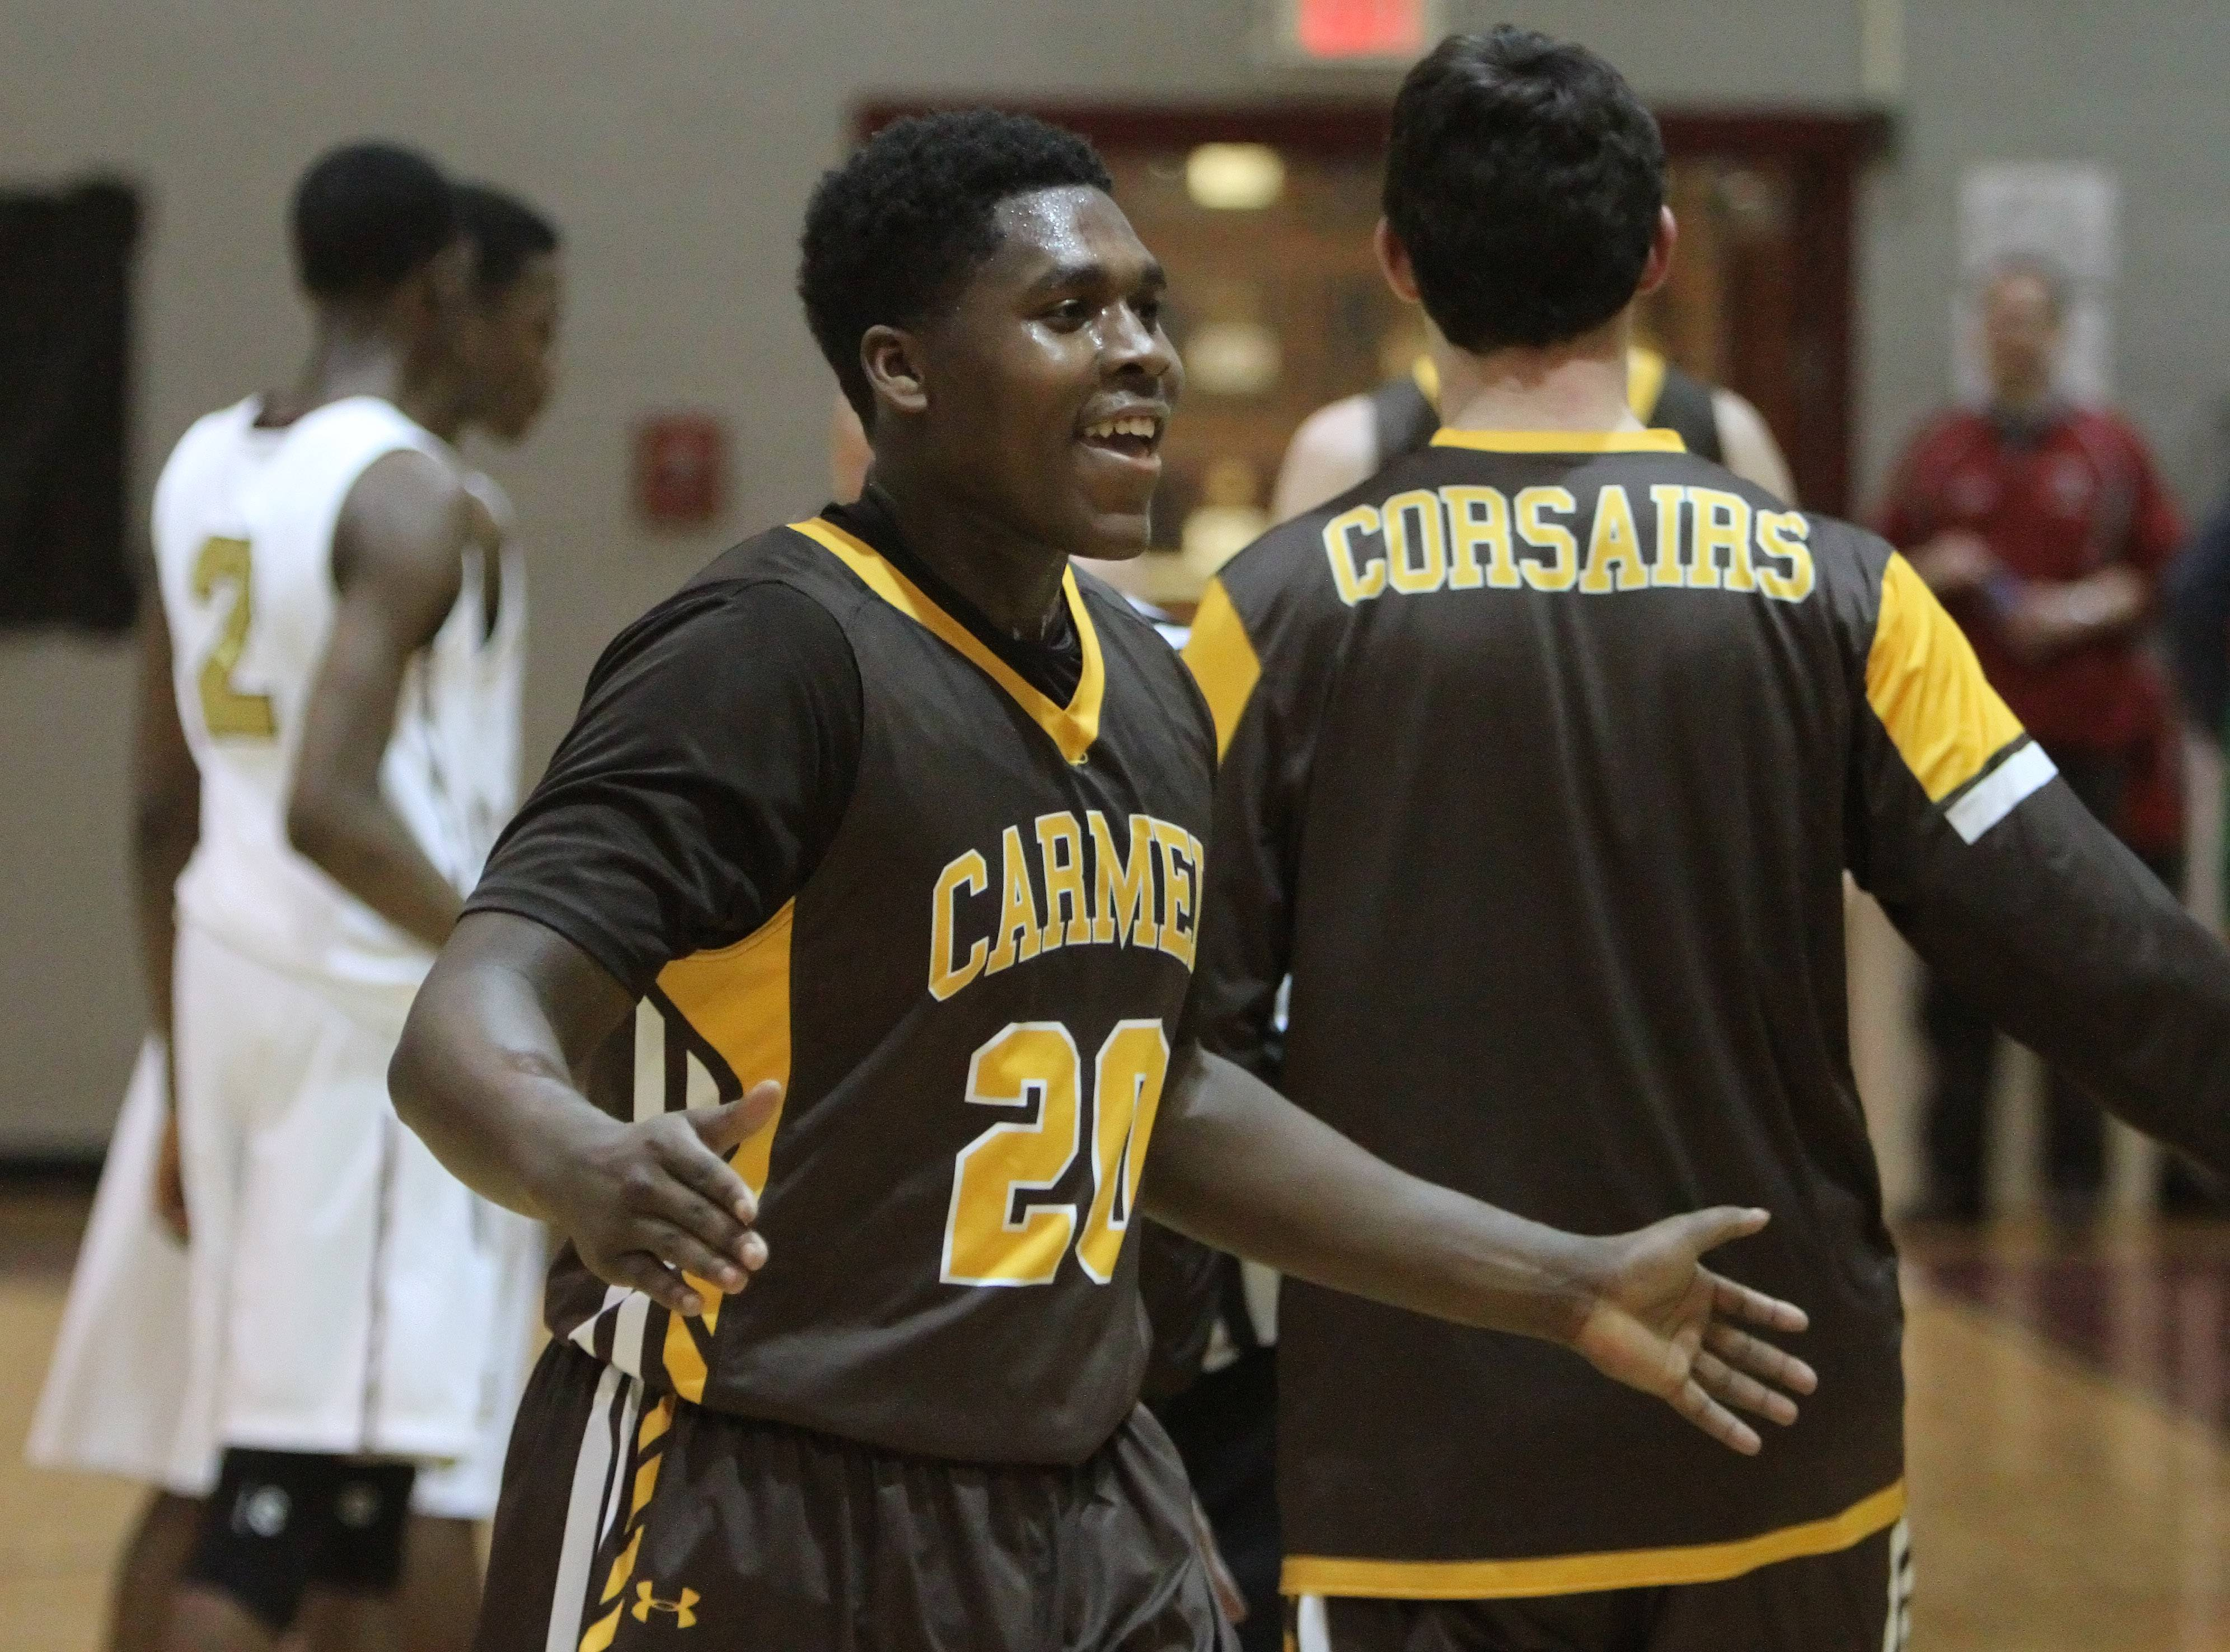 Images: Carmel vs. Uplift boys basketball